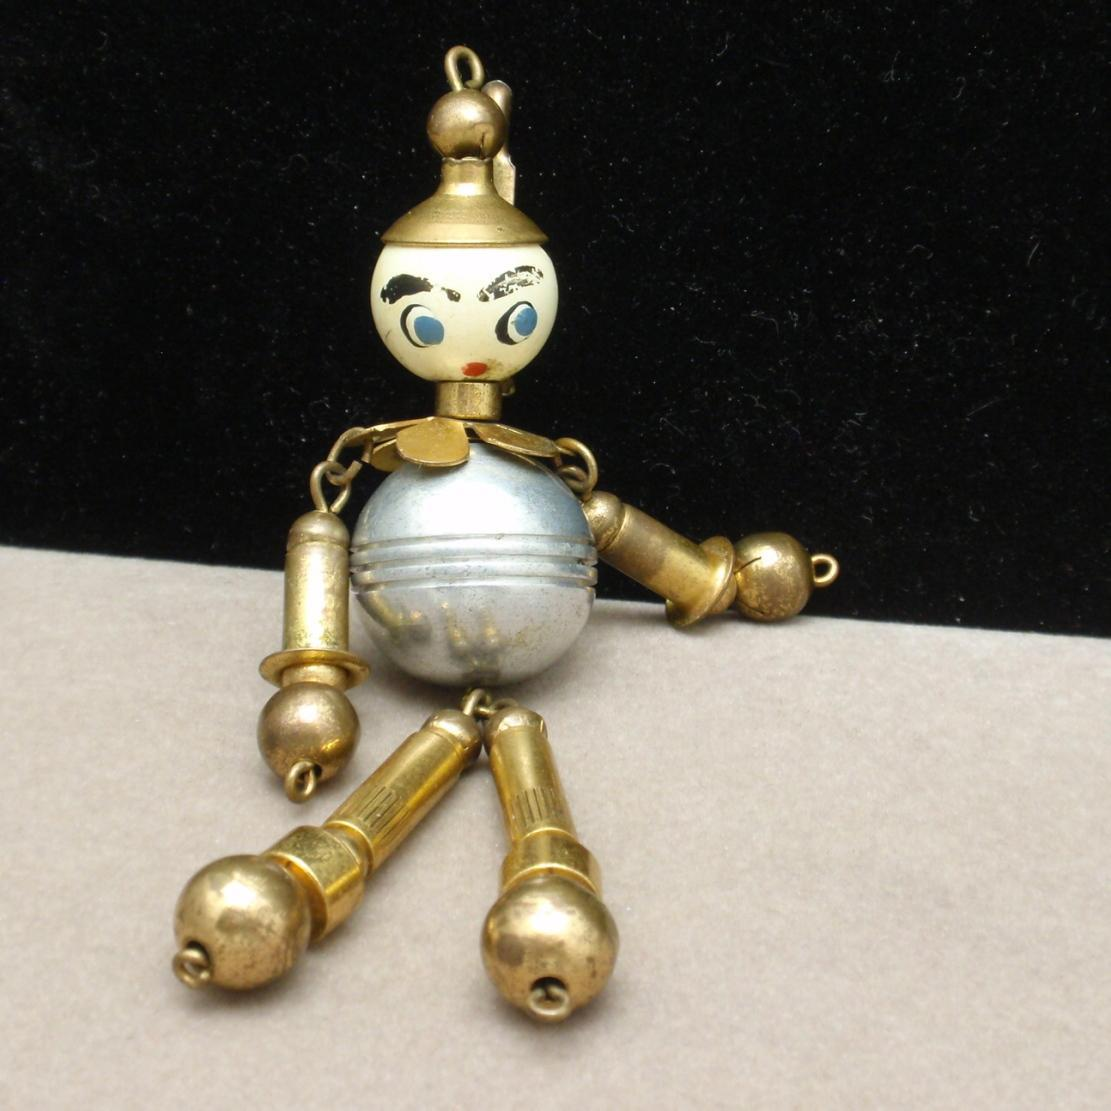 Moving Metal Parts Brooch Pin Crib Toy Figure Robotics Tin Man Vintage